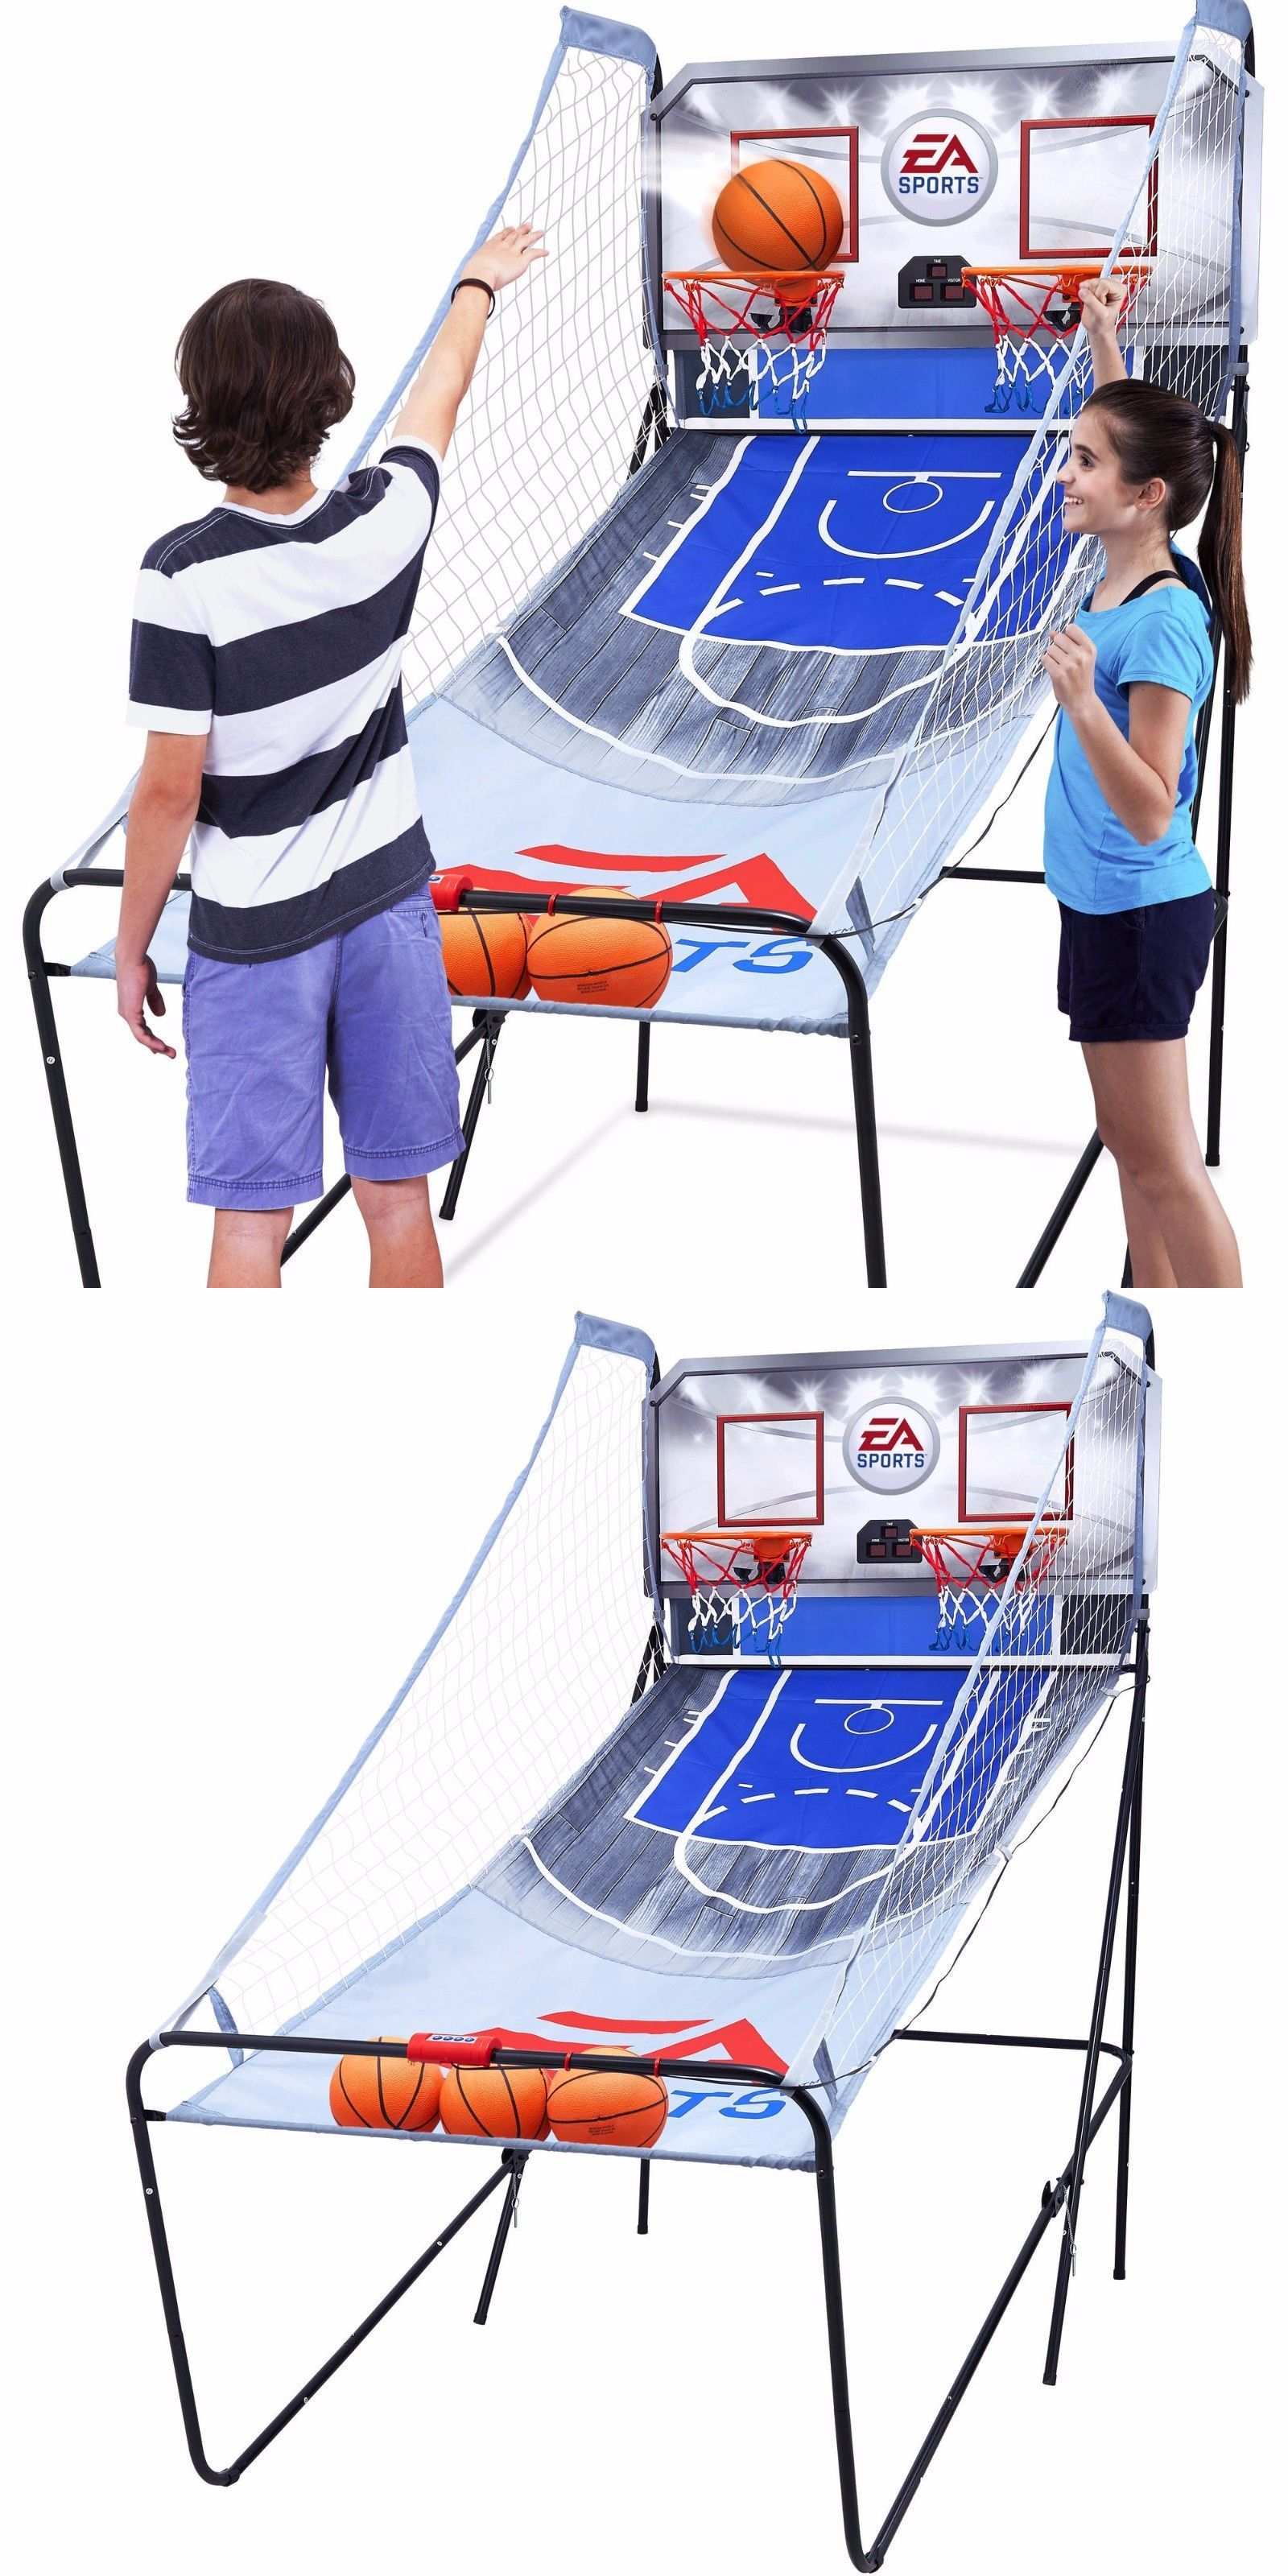 other indoor games 36278 ea sports 2 player arcade pop a shot